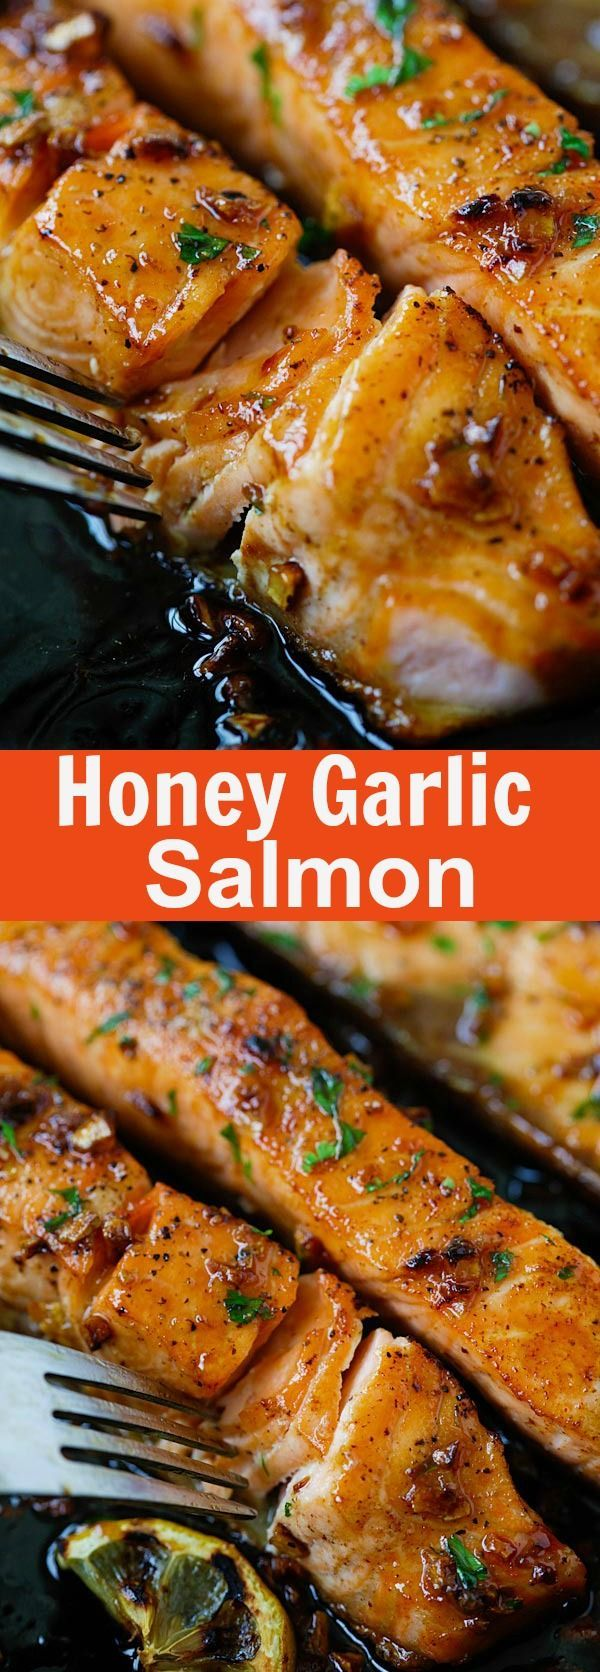 Honey Garlic Salmon Honey Garlic Salmon – garlicky, sweet and sticky salmon with simple ingredients. Takes 20 mins, so good and great for tonight's dinner | rasamalaysia.com